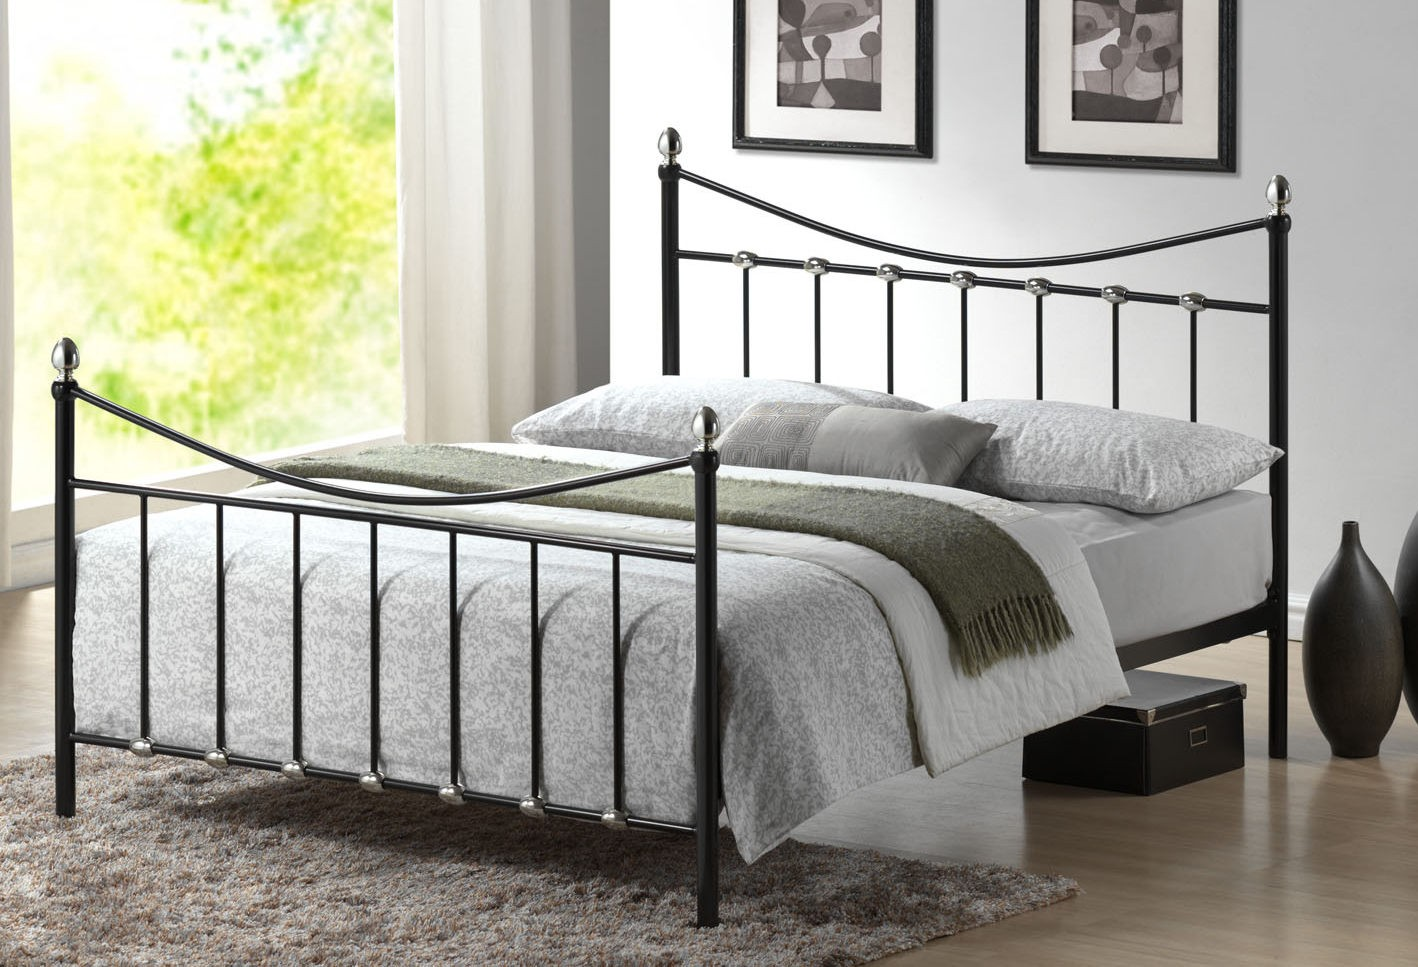 Metal beds in bedroom design for Metal bedroom furniture